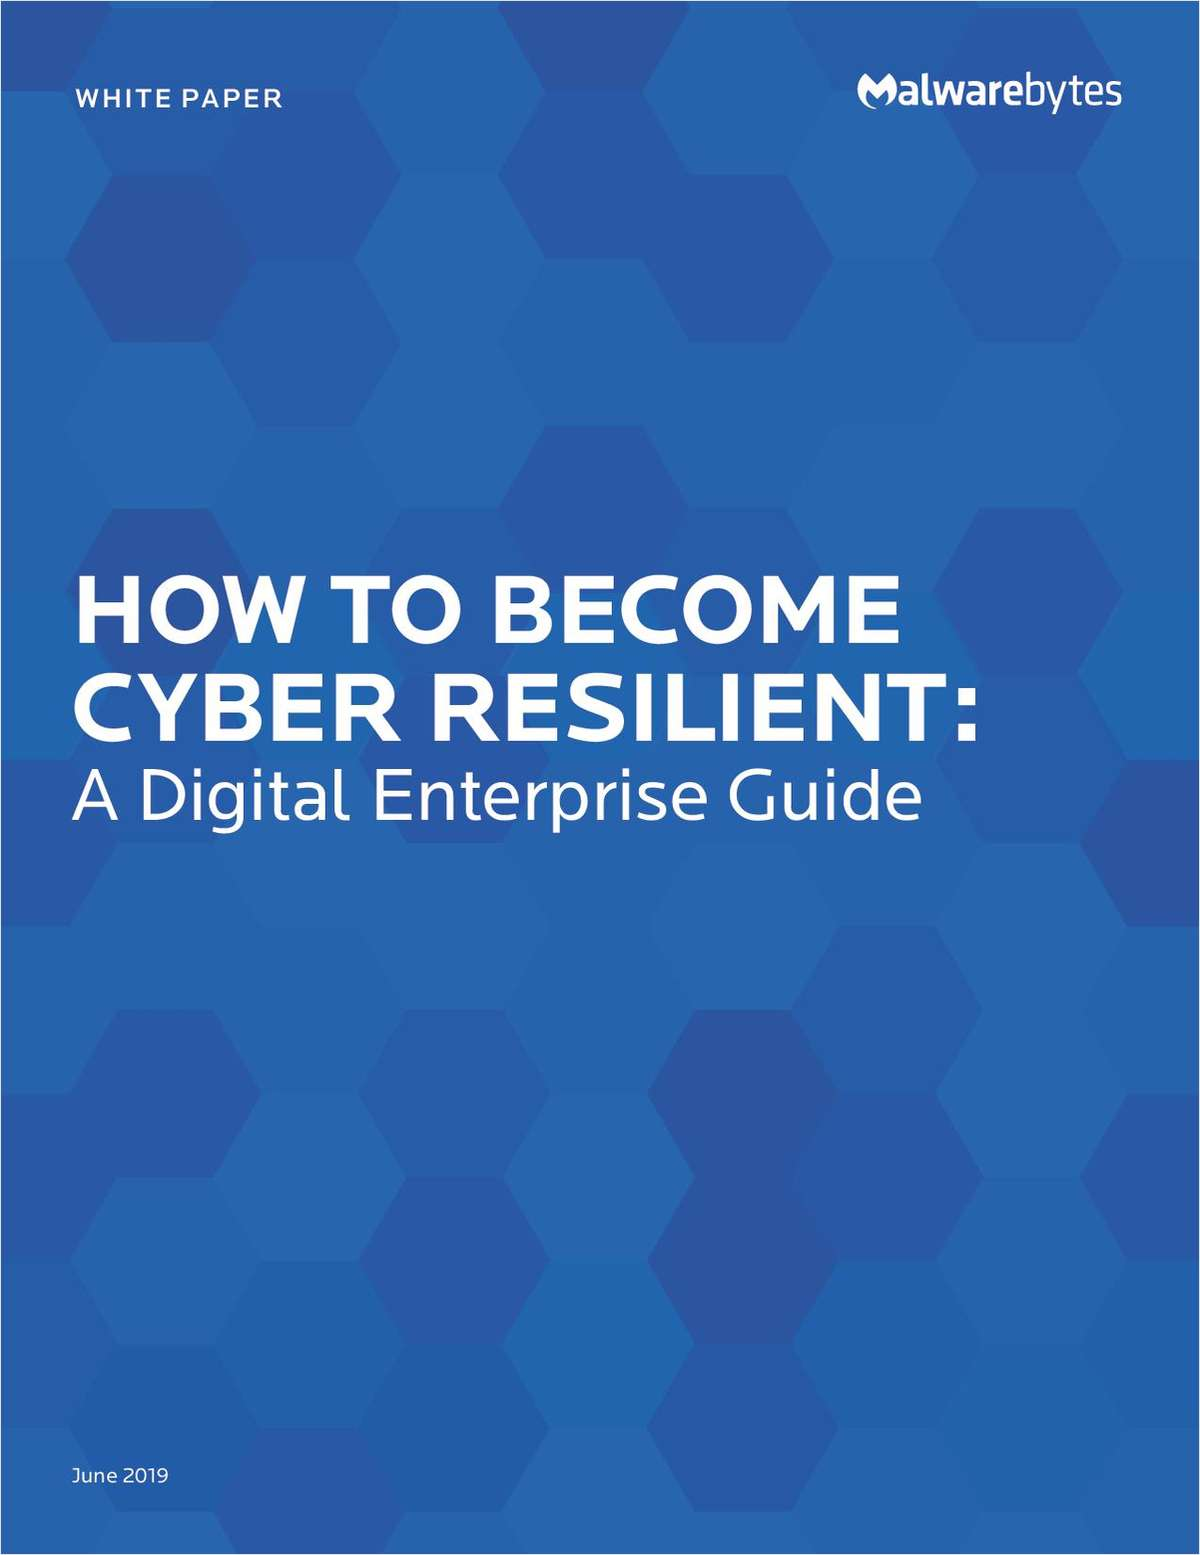 How to Become Cyber Resilient: A Digital Enterprise